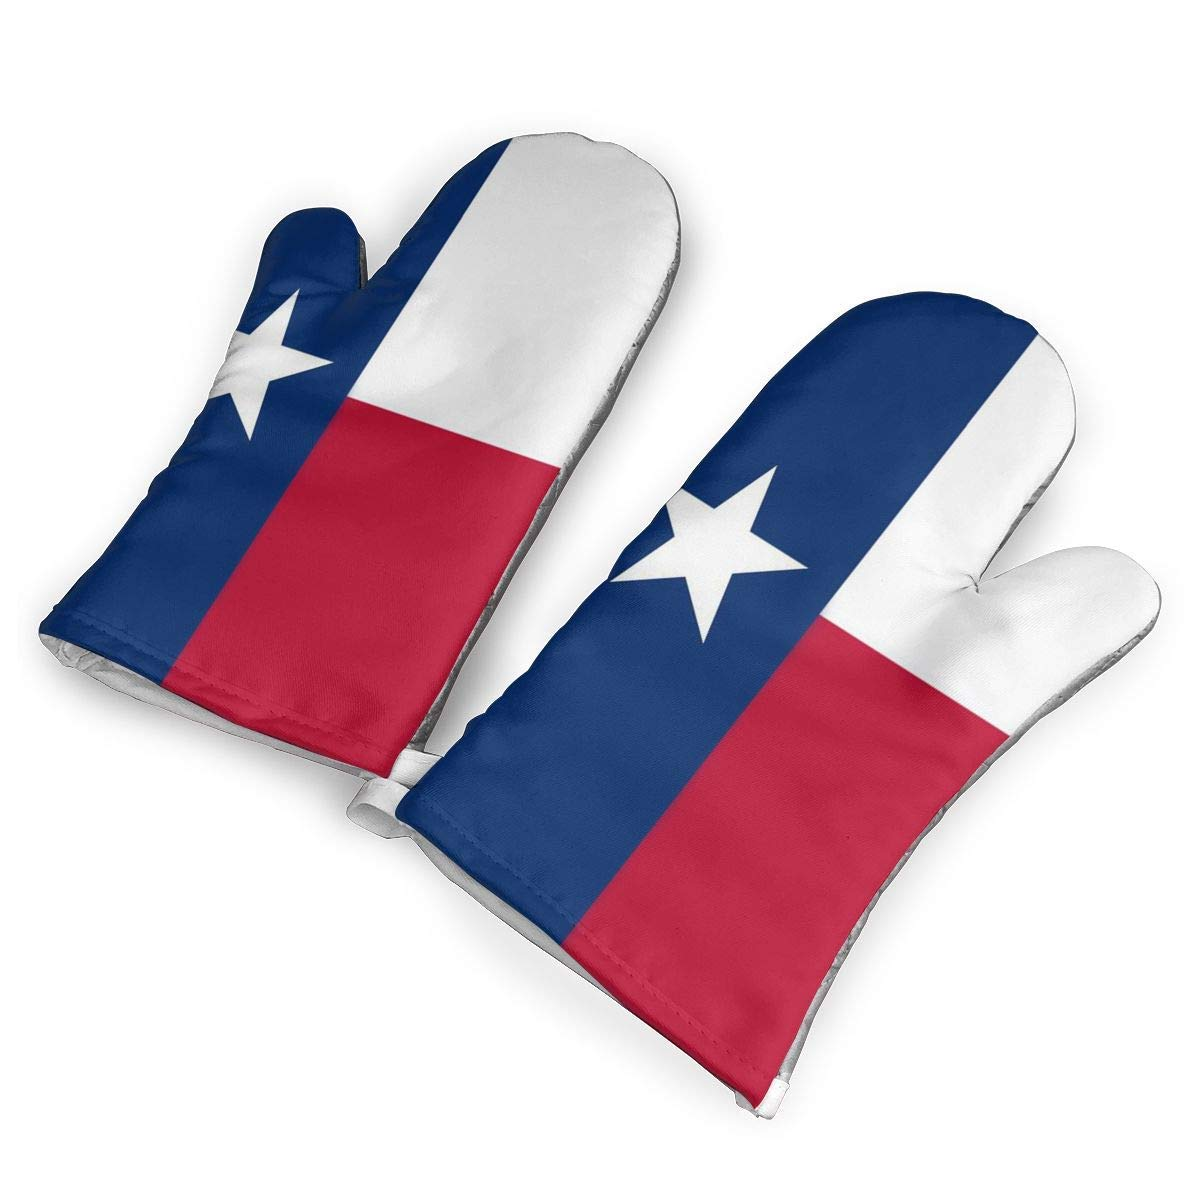 VANKINE Texas Oven Mitts Cooking Gloves 480 F Heat Resistant, Non Slip Grip Pot Holders for Kitchen Oven BBQ Grill and Fire Pits for Cooking Baking